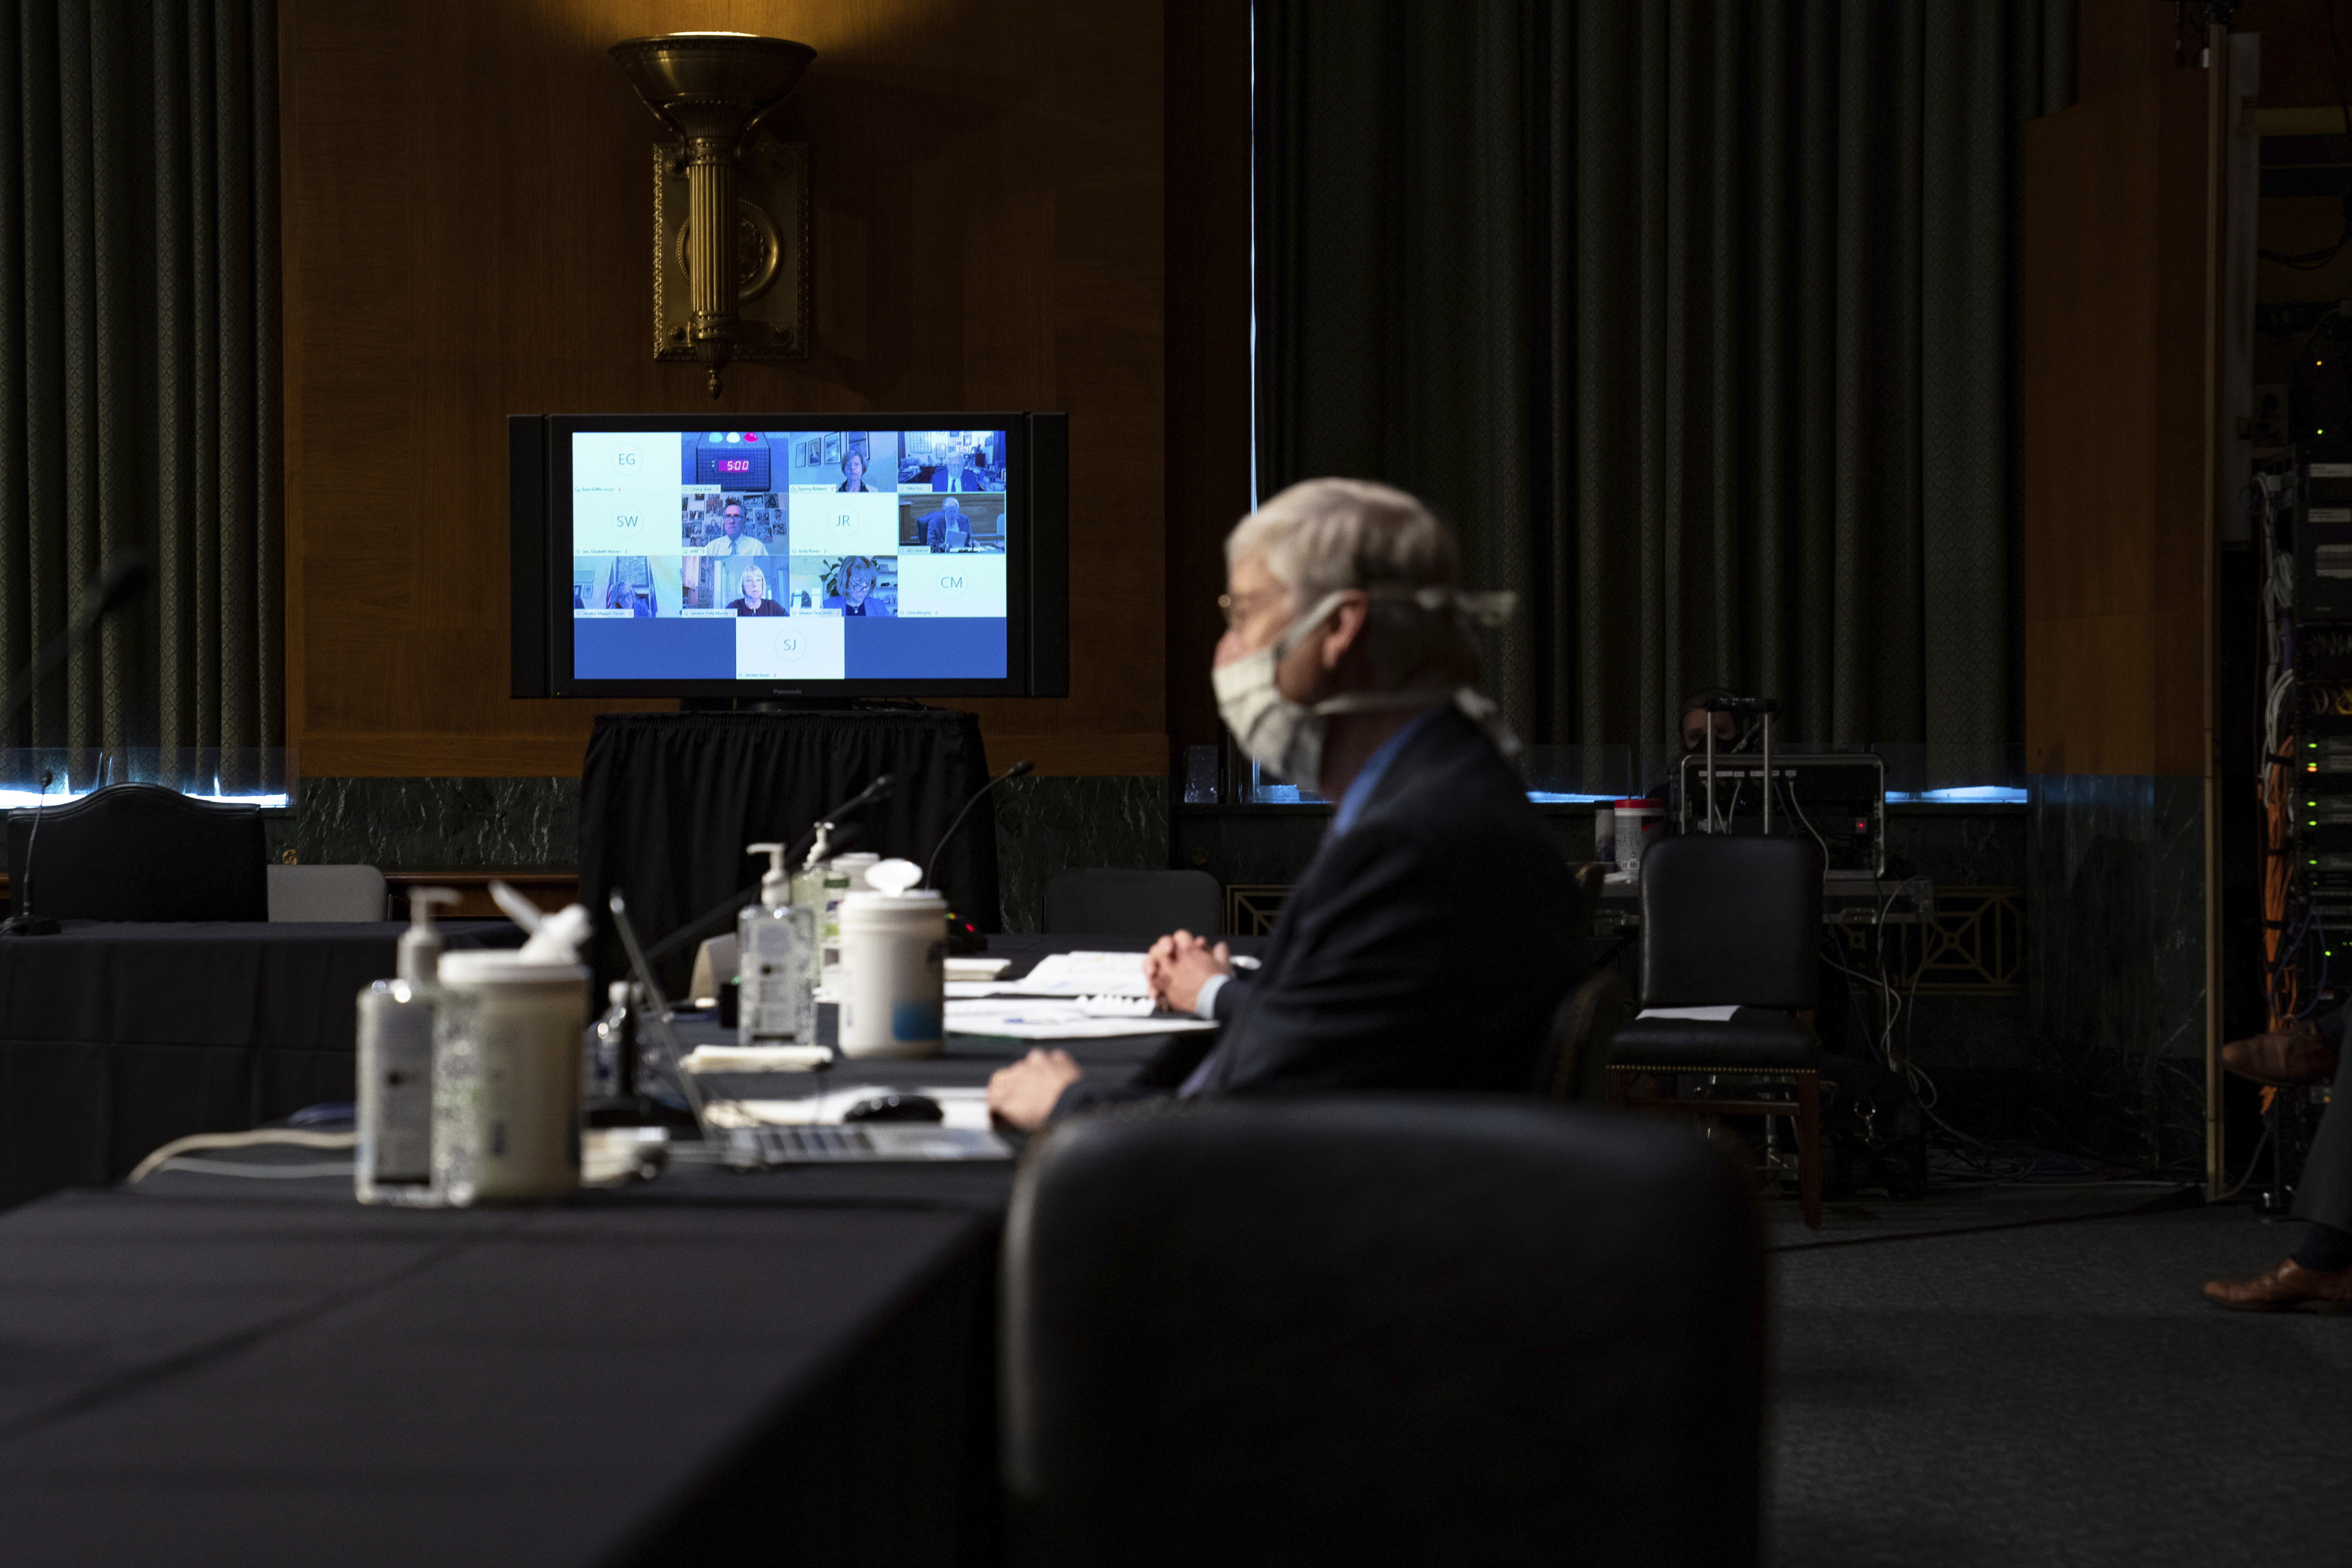 A monitor displays video feeds from members of the Senate Health Education Labor and Pensions Committee via teleconference during a Senate Health Education Labor and Pensions Committee hearing on new coronavirus tests on Capitol Hill in Washington, Thursday, May 7, 2020. National Institutes of Health Director Dr. Francis Collins, looks on at right. (Anna Moneymaker/The New York Times via AP, Pool)